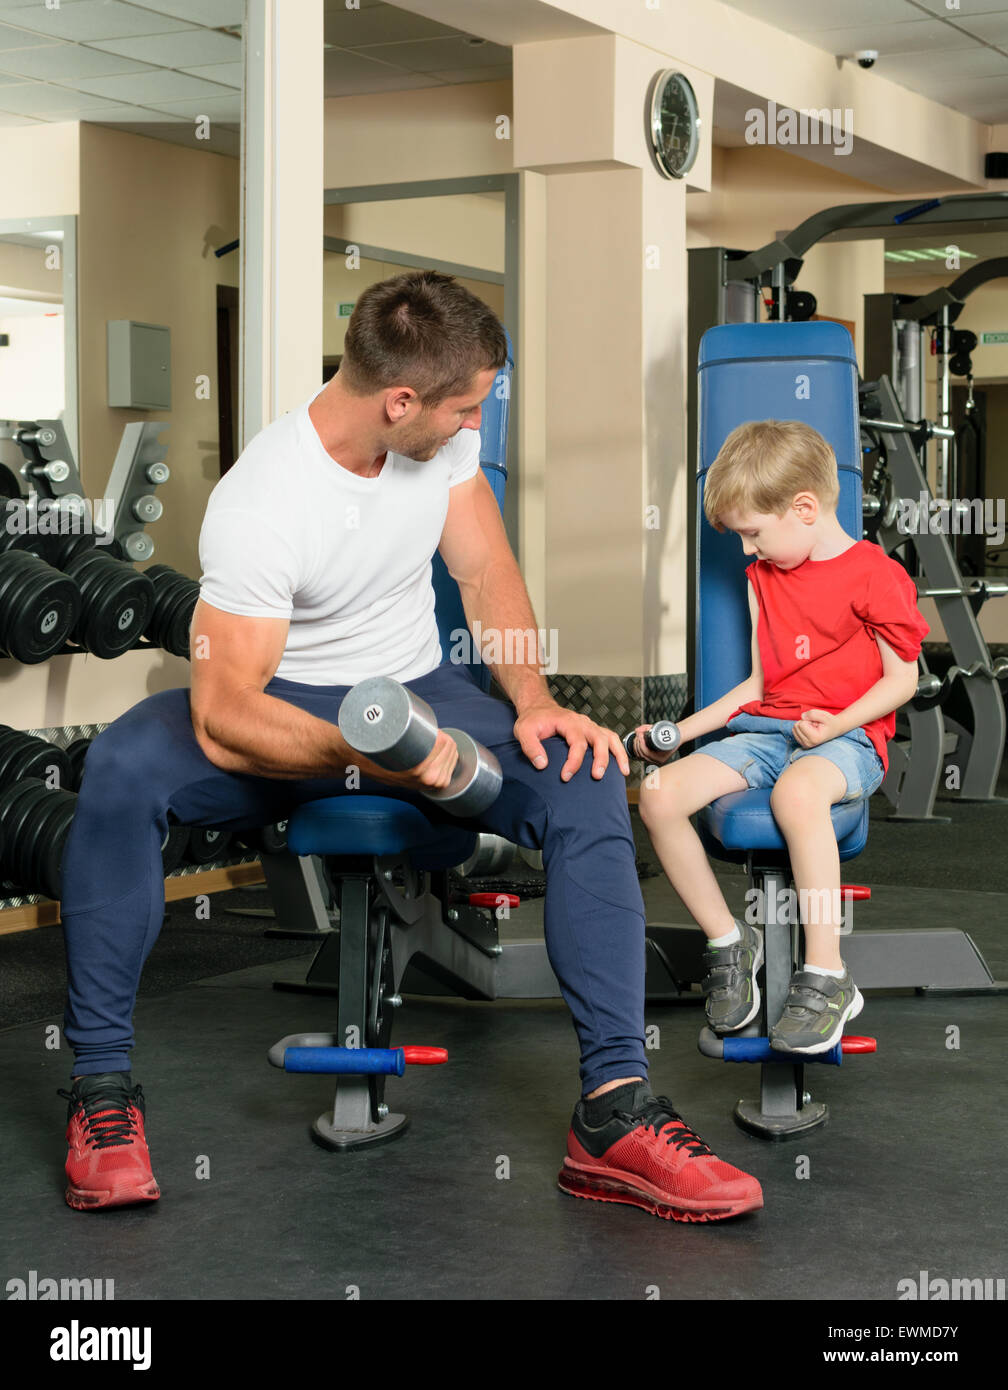 Pope shows little son how to lift weights in the gym - Stock Image